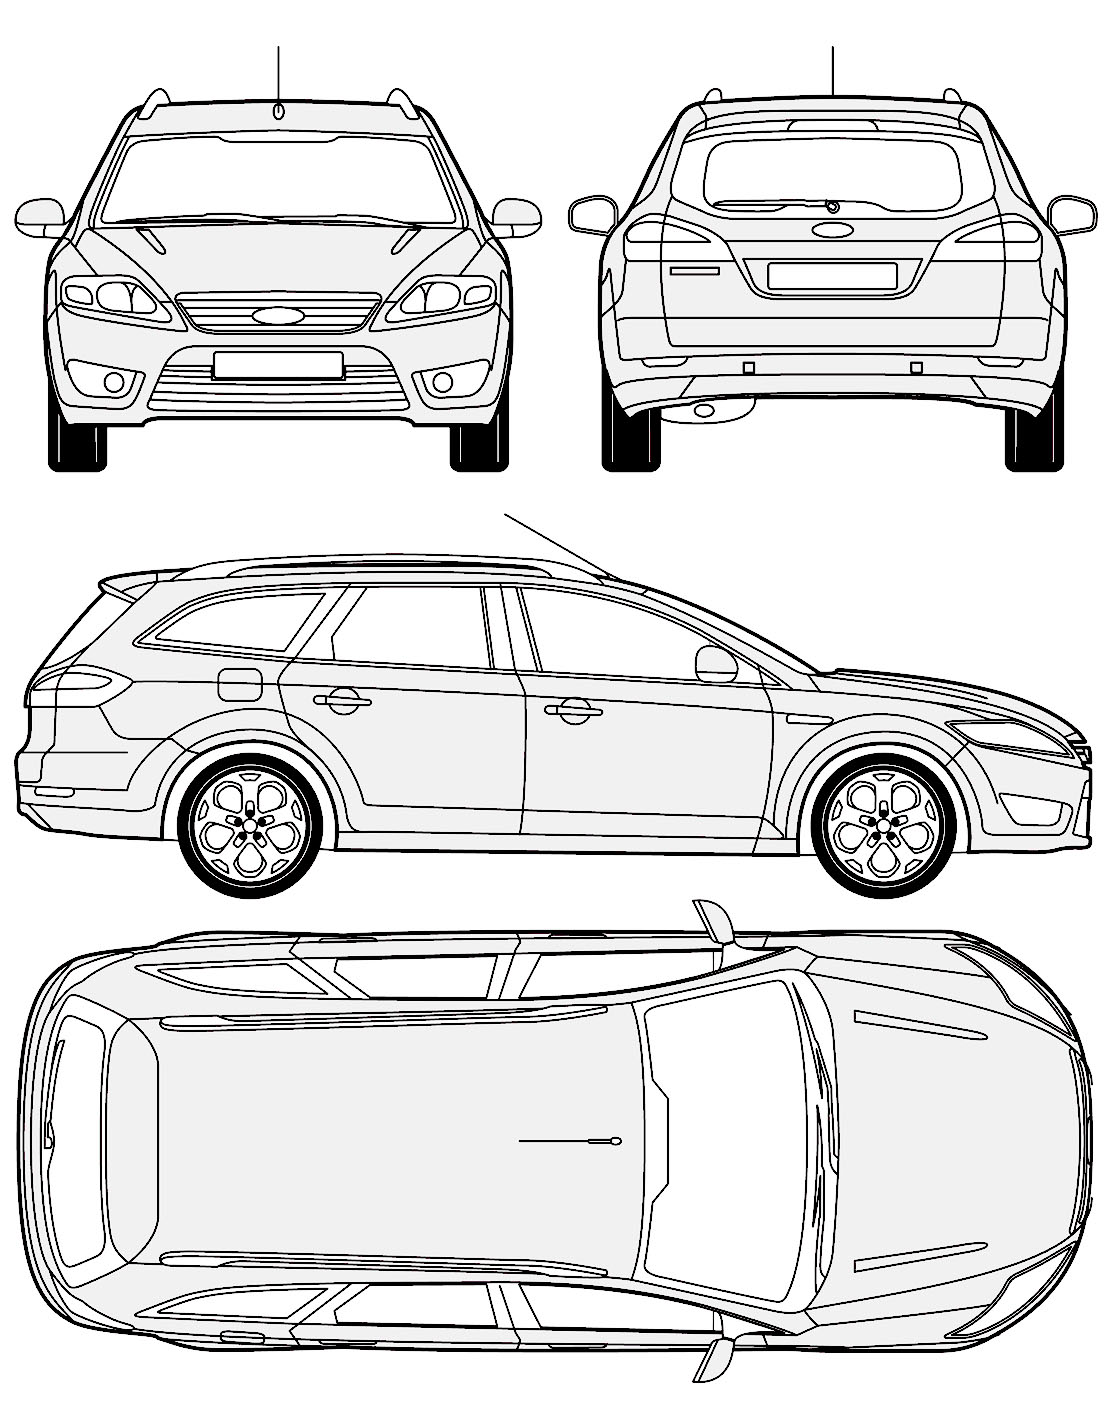 hight resolution of blueprints ford 10 pic jpg 1 85 mb